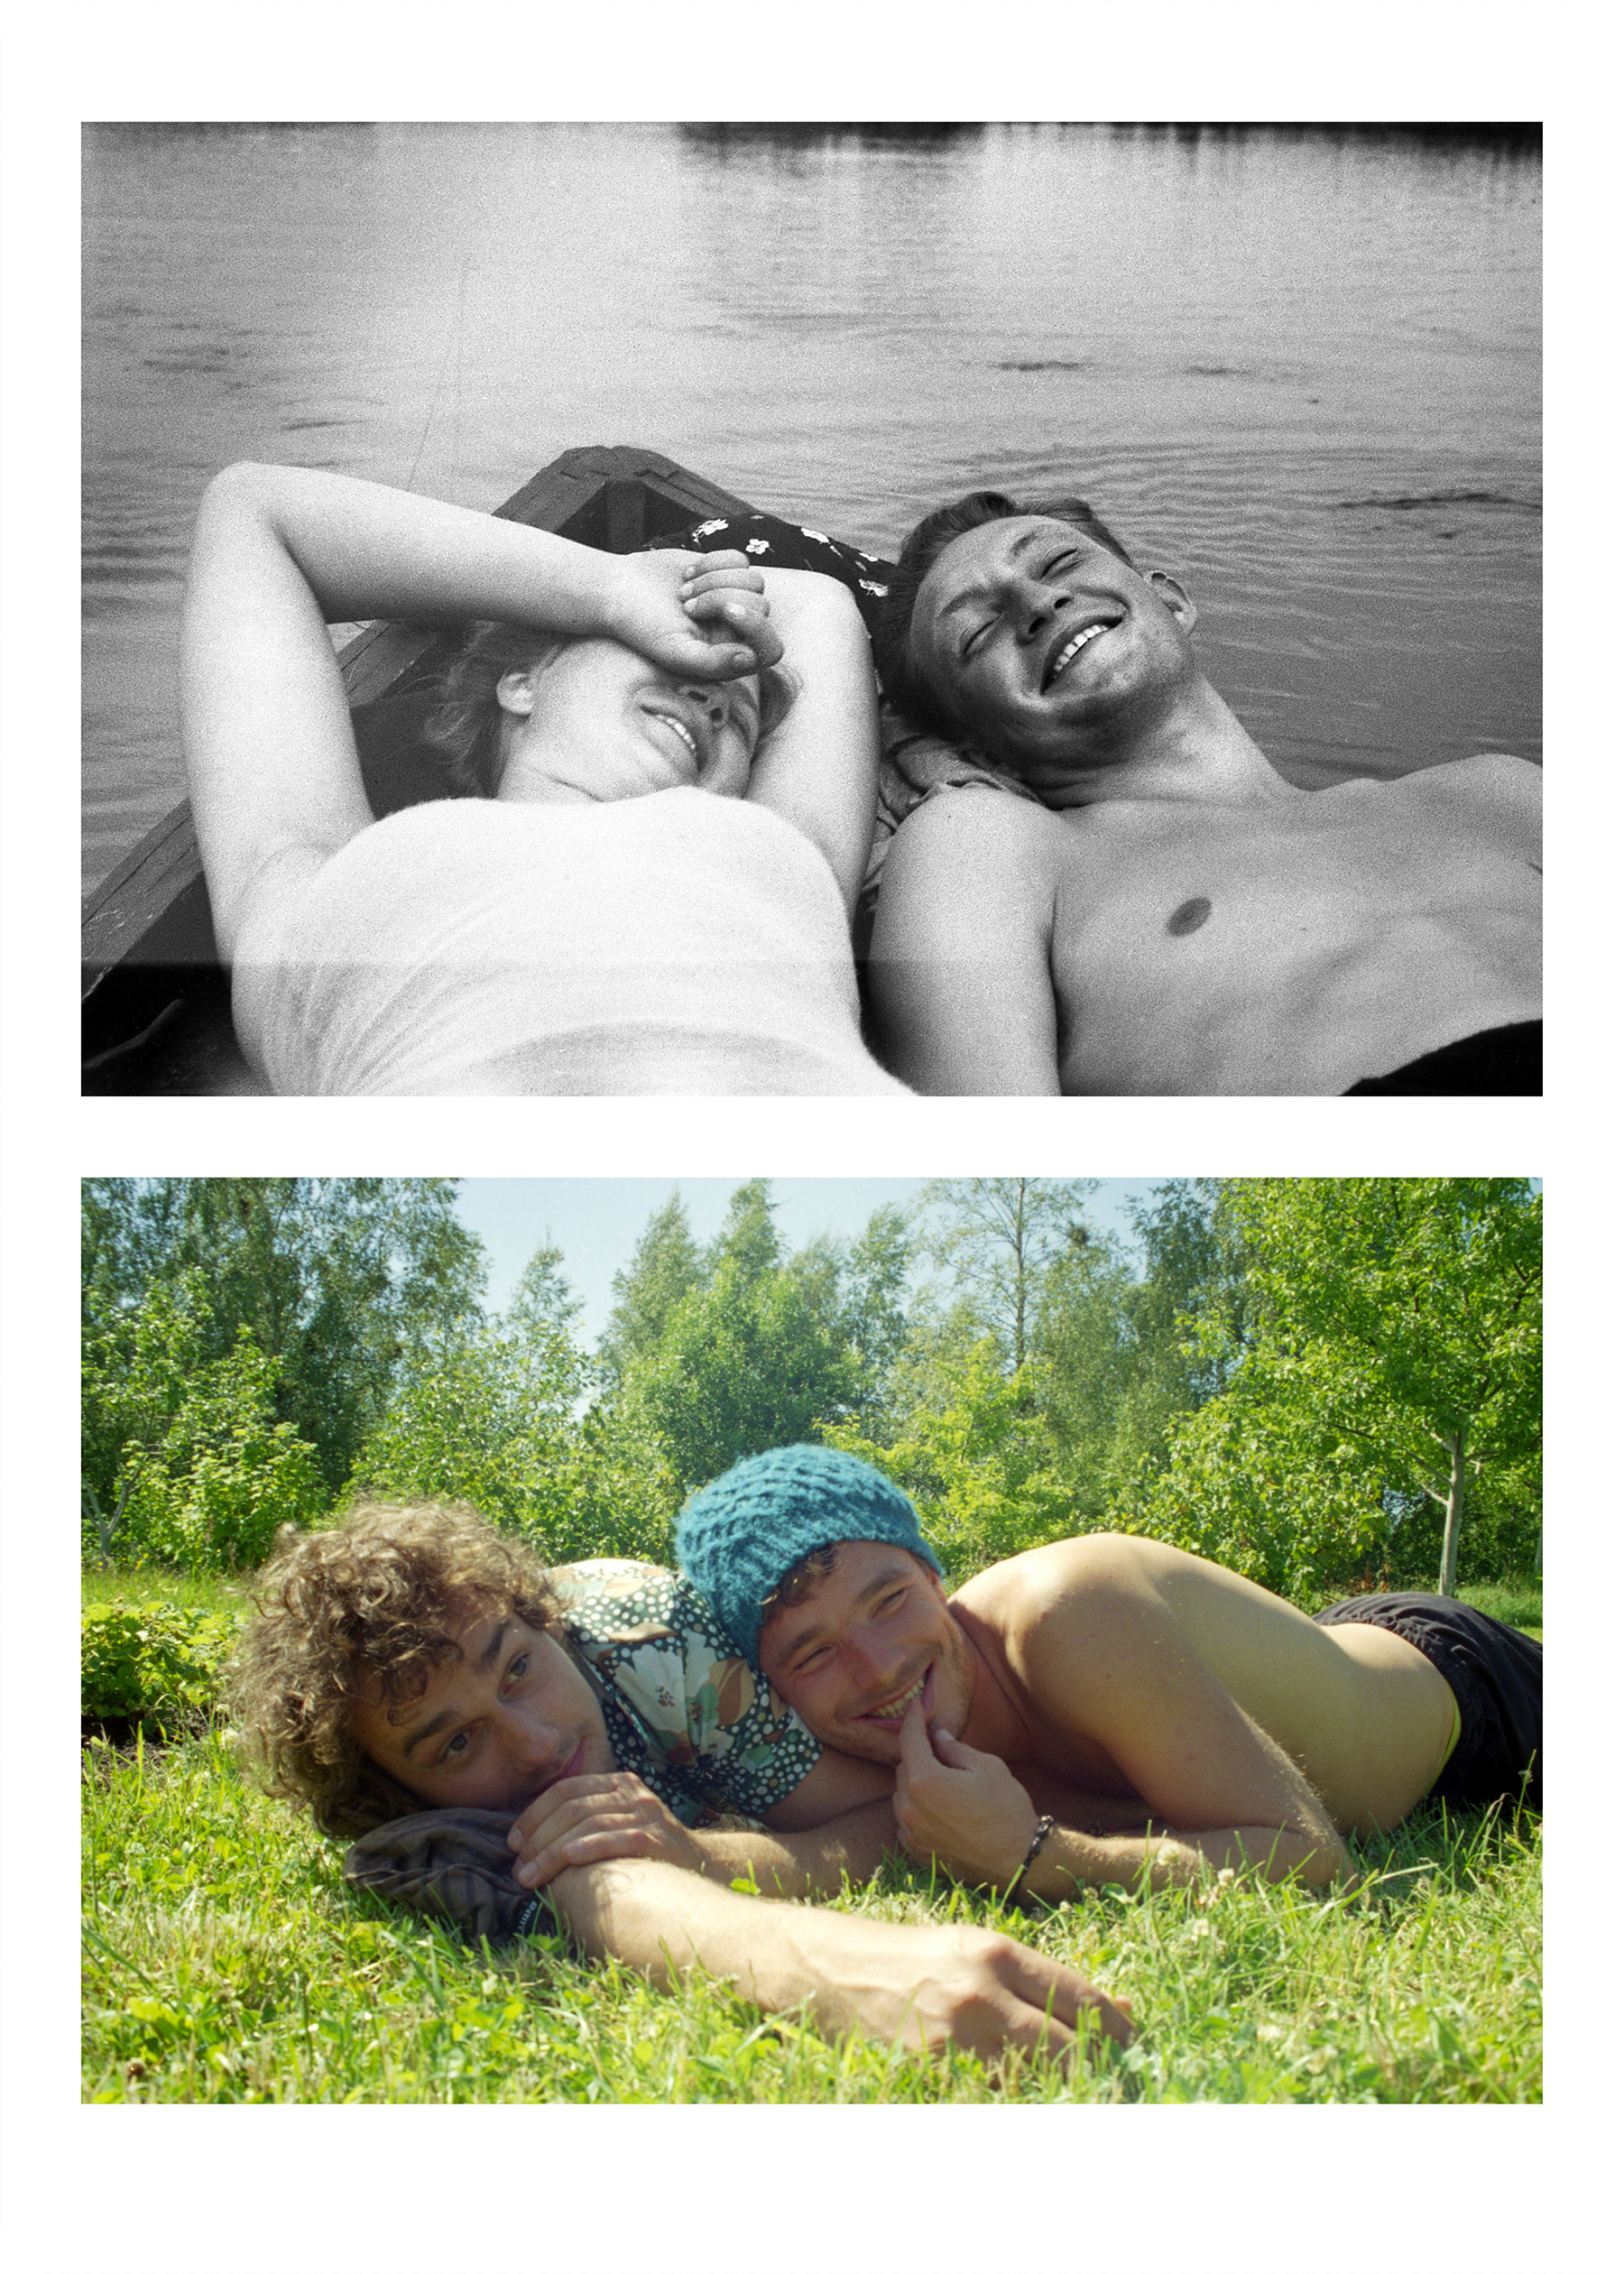 A diptych of similar images, old black and white on the top and colour on the bottom. Both depict two people lounging together outdoors.